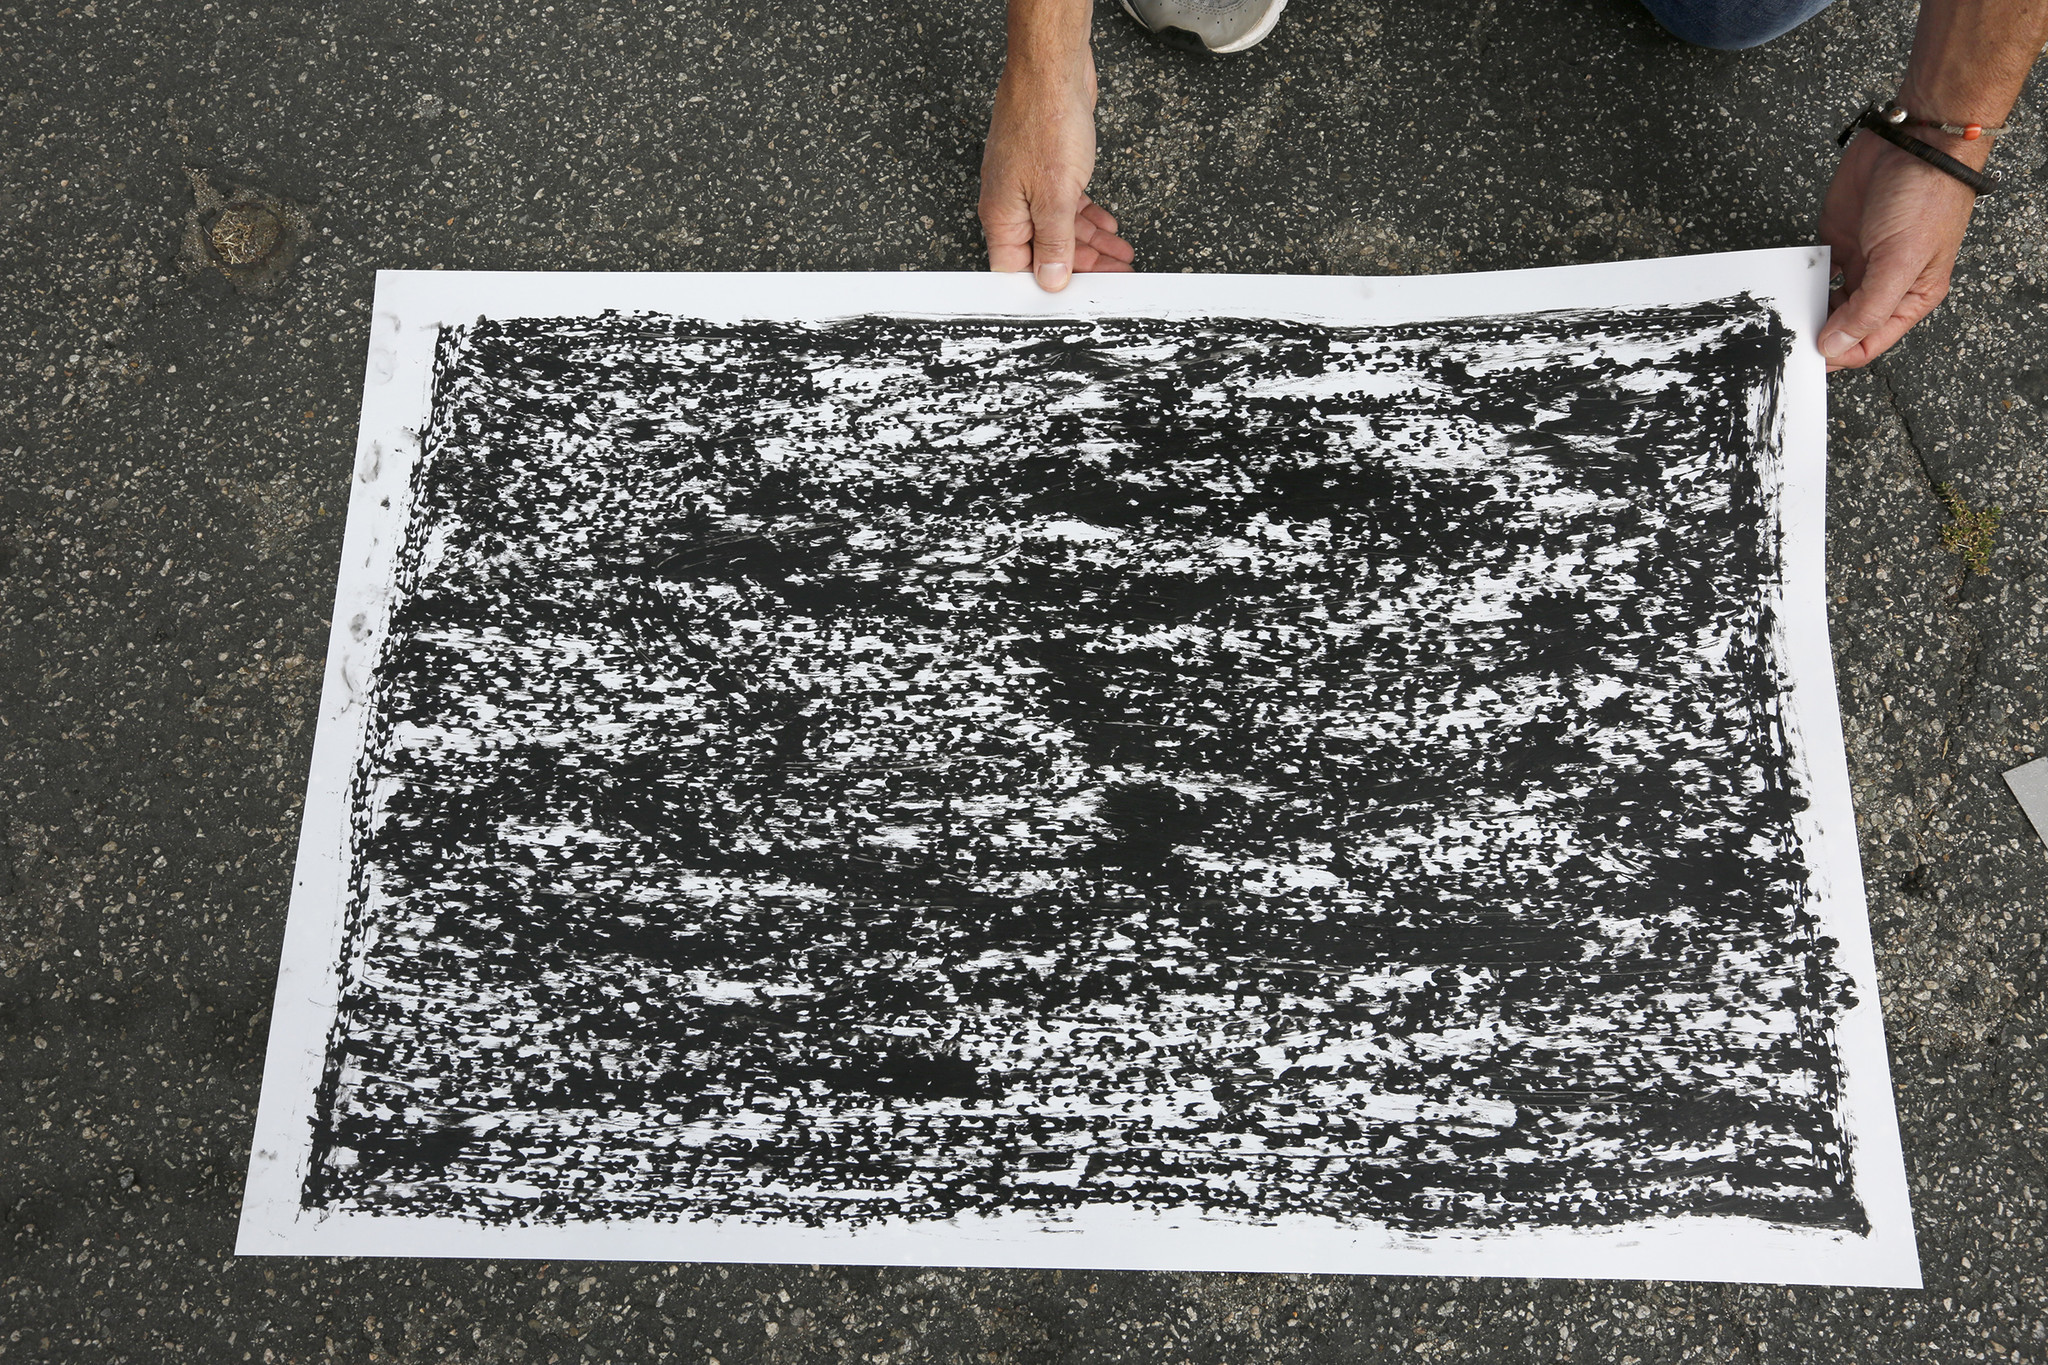 Artist Jeff Beall displays one of the rubbings taken at the site of an unsolved death related to the 1992 L.A. riots — in this case that of a 23-year-old Latino man named Arturo C. Miranda.